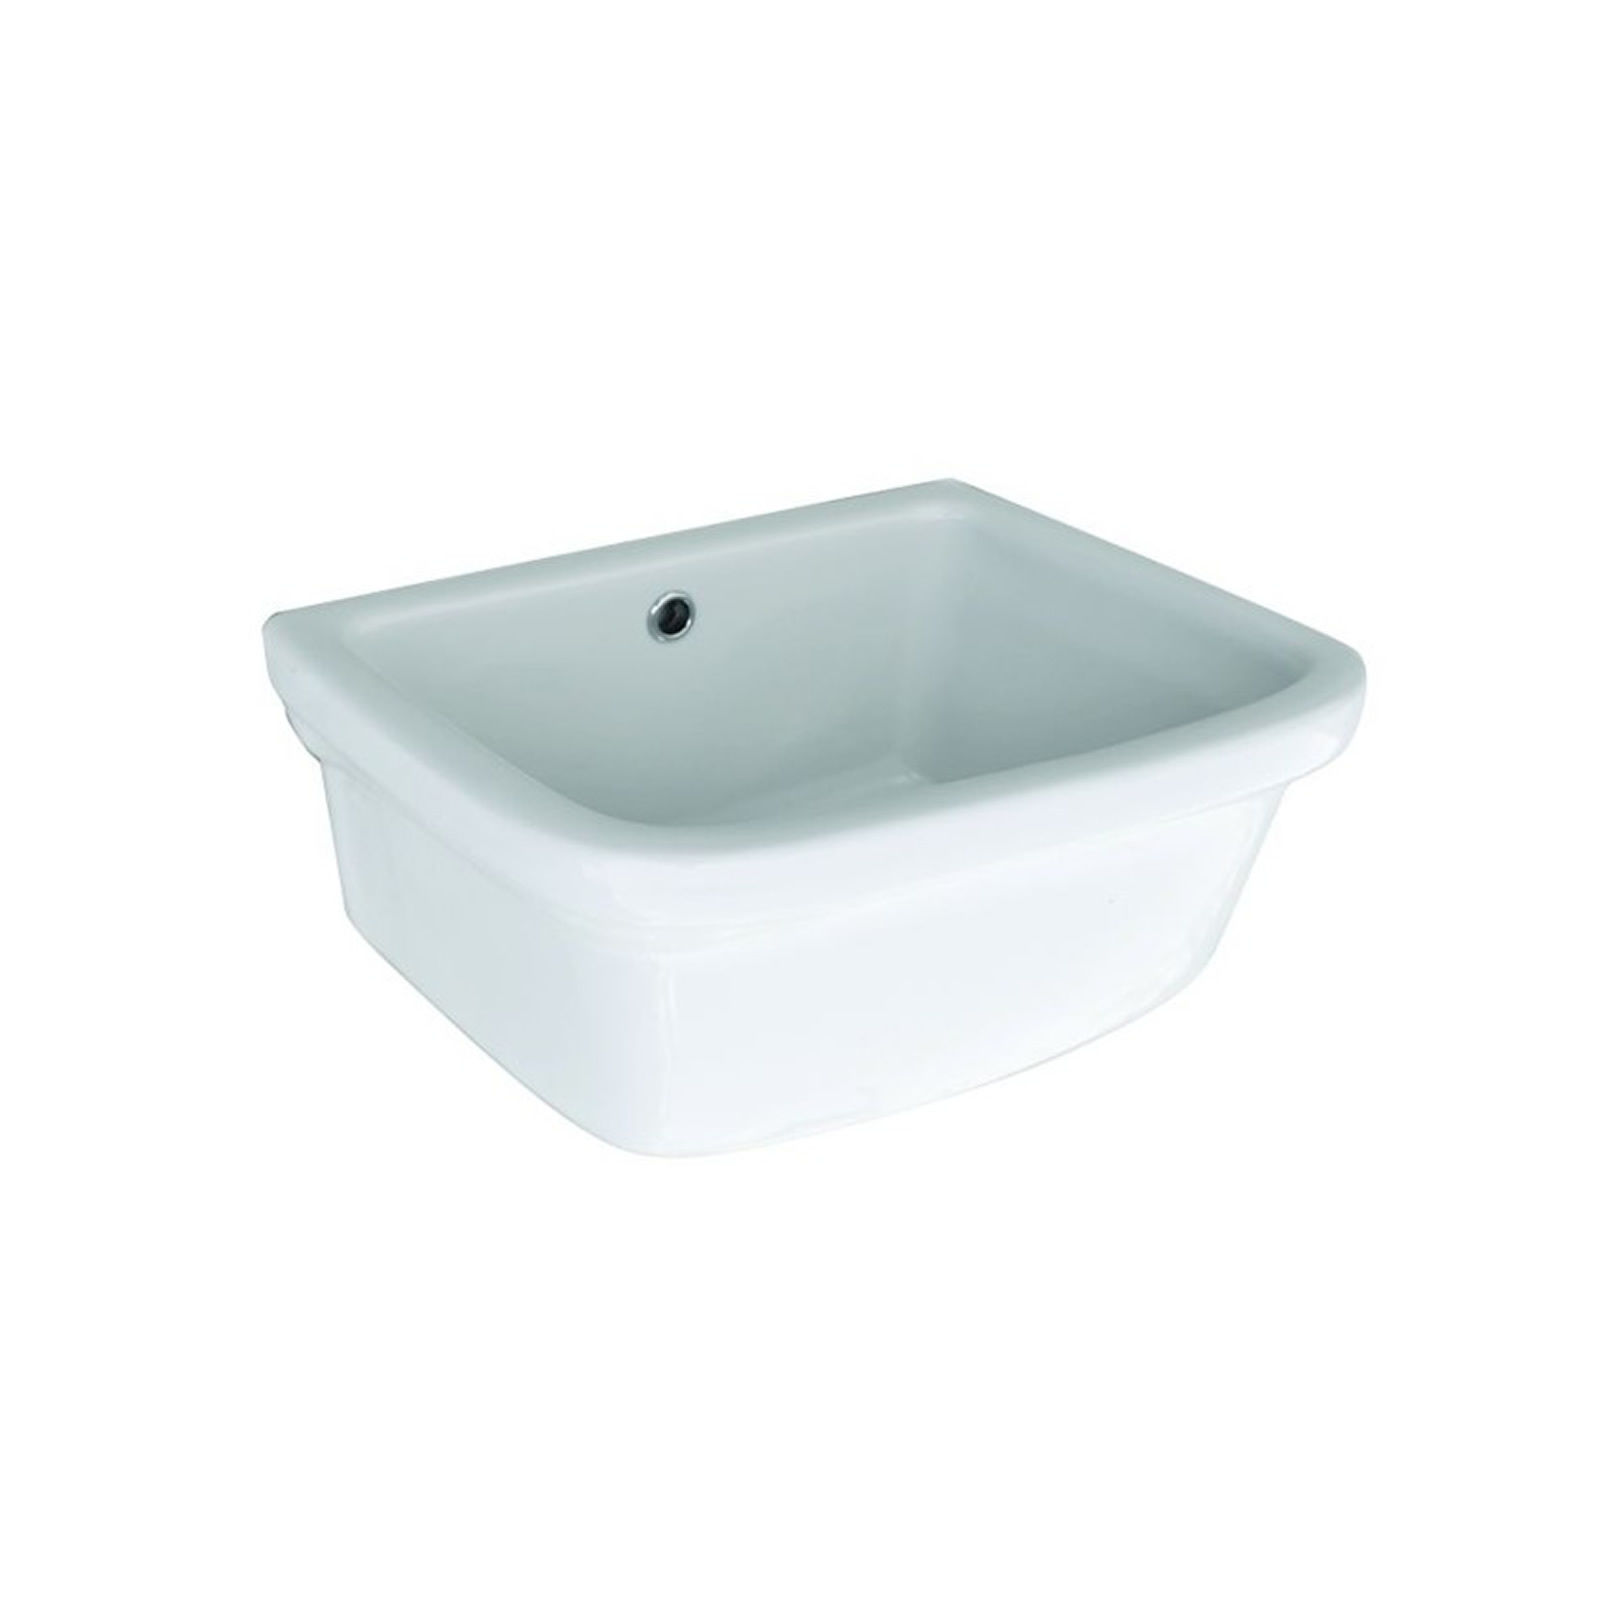 Pilozza Ceramica Con Mobile.Sink